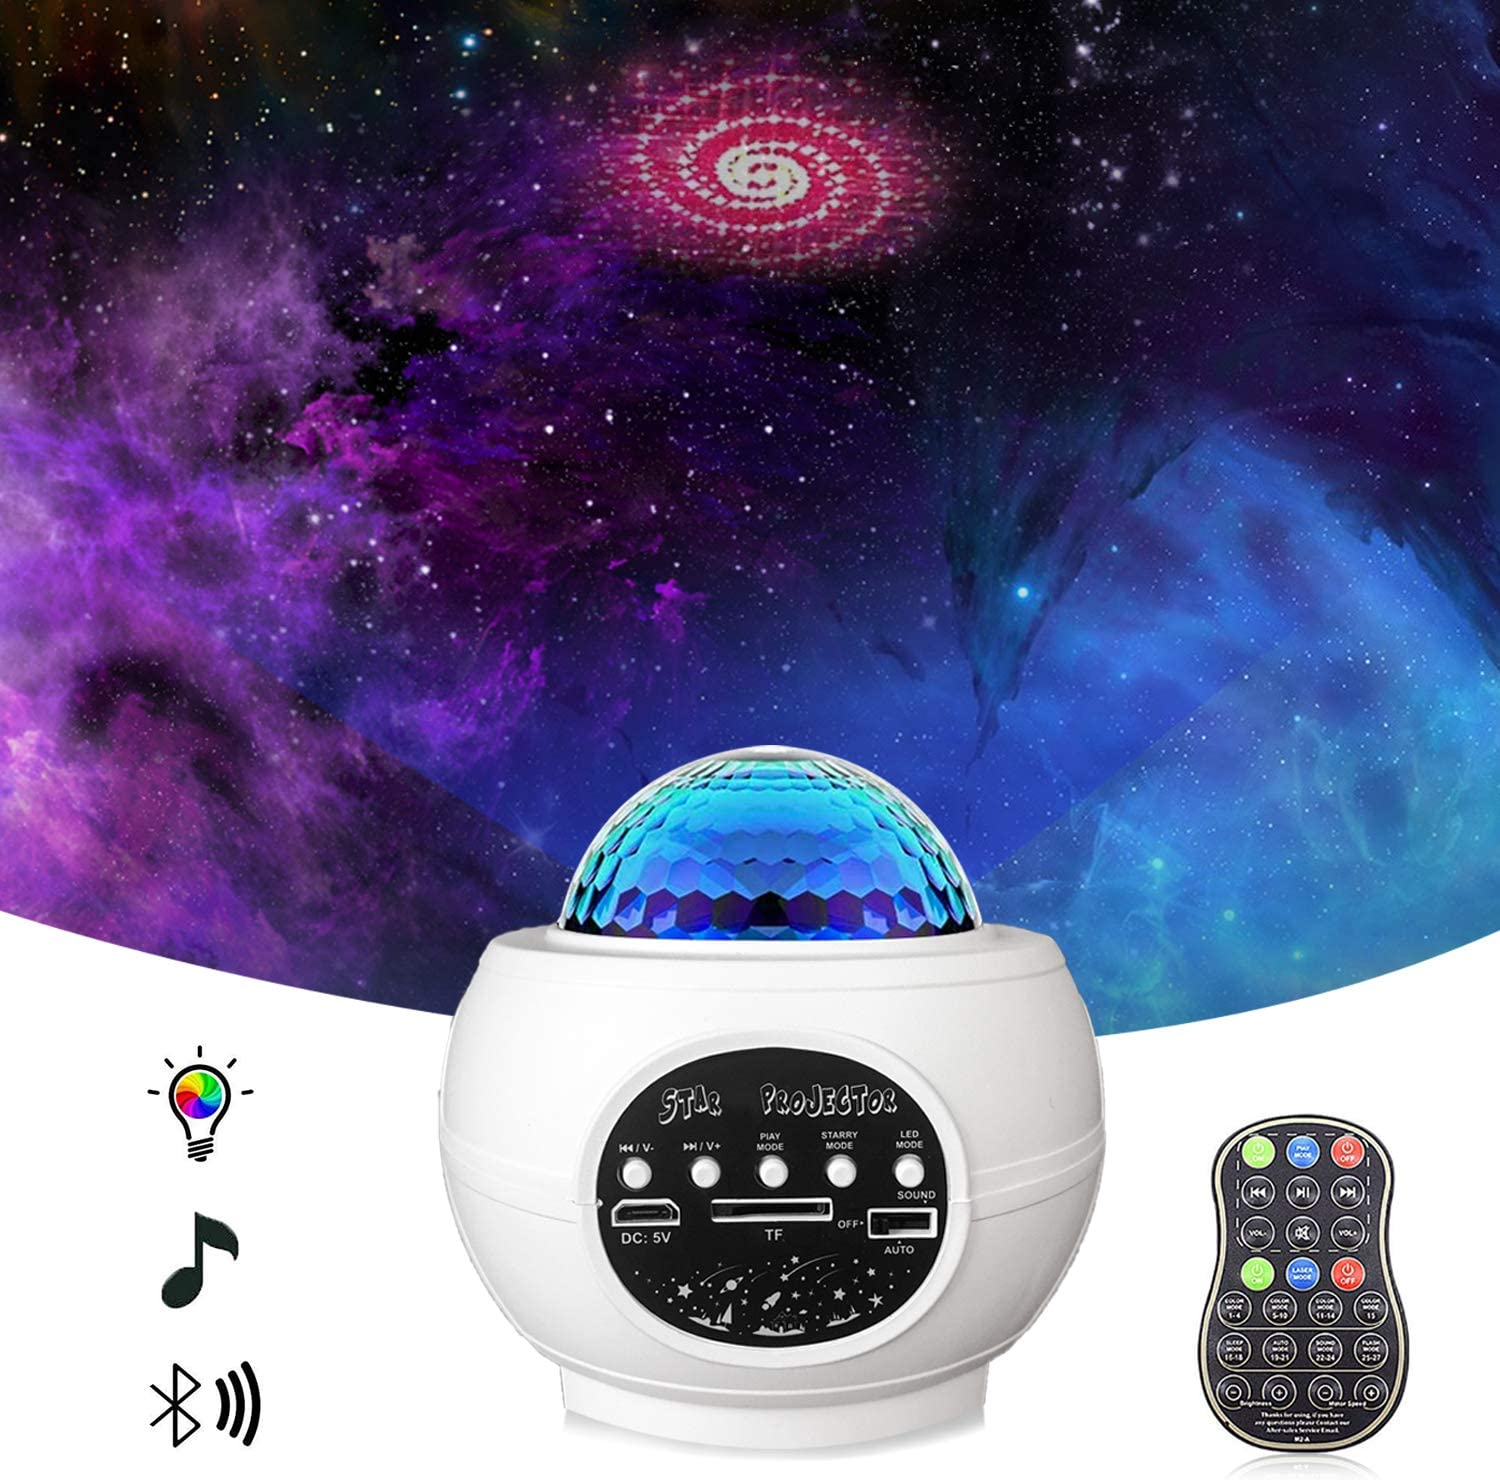 Star Projector Night Light Projector With LED Galaxy Ocean Wave Projector Bluetooth Music Speaker For Baby Bedroom, Game Rooms, Party, Home Theatre, Night Light Ambiance - - Amazon.com